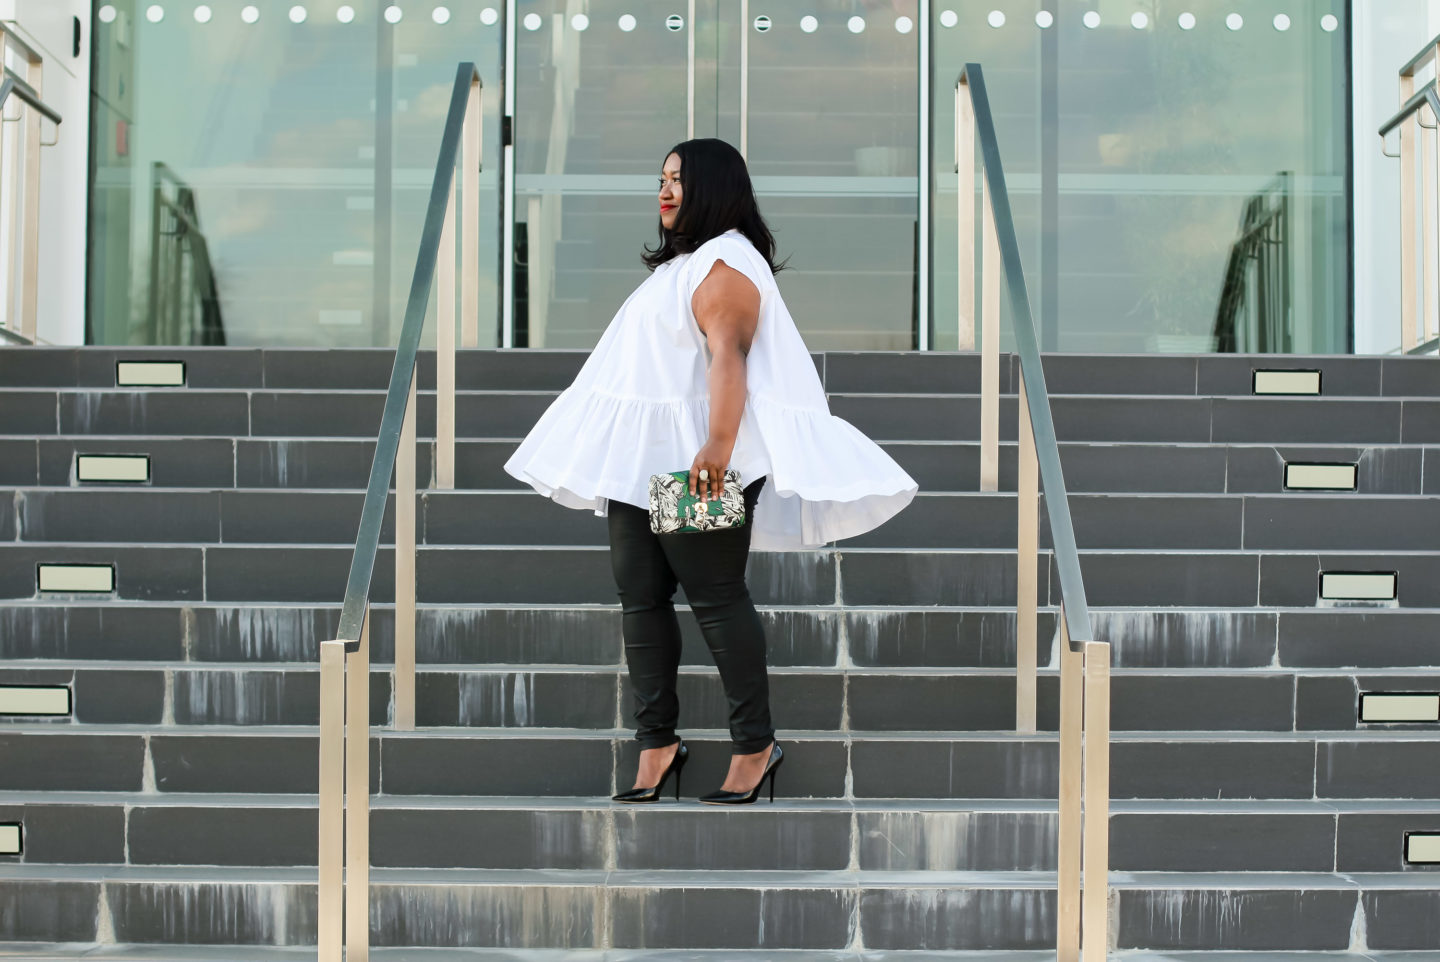 Plus Size Fashion for Women • White Shirt Outfit Idea • Shirt Show | Shapely Chic Sheri